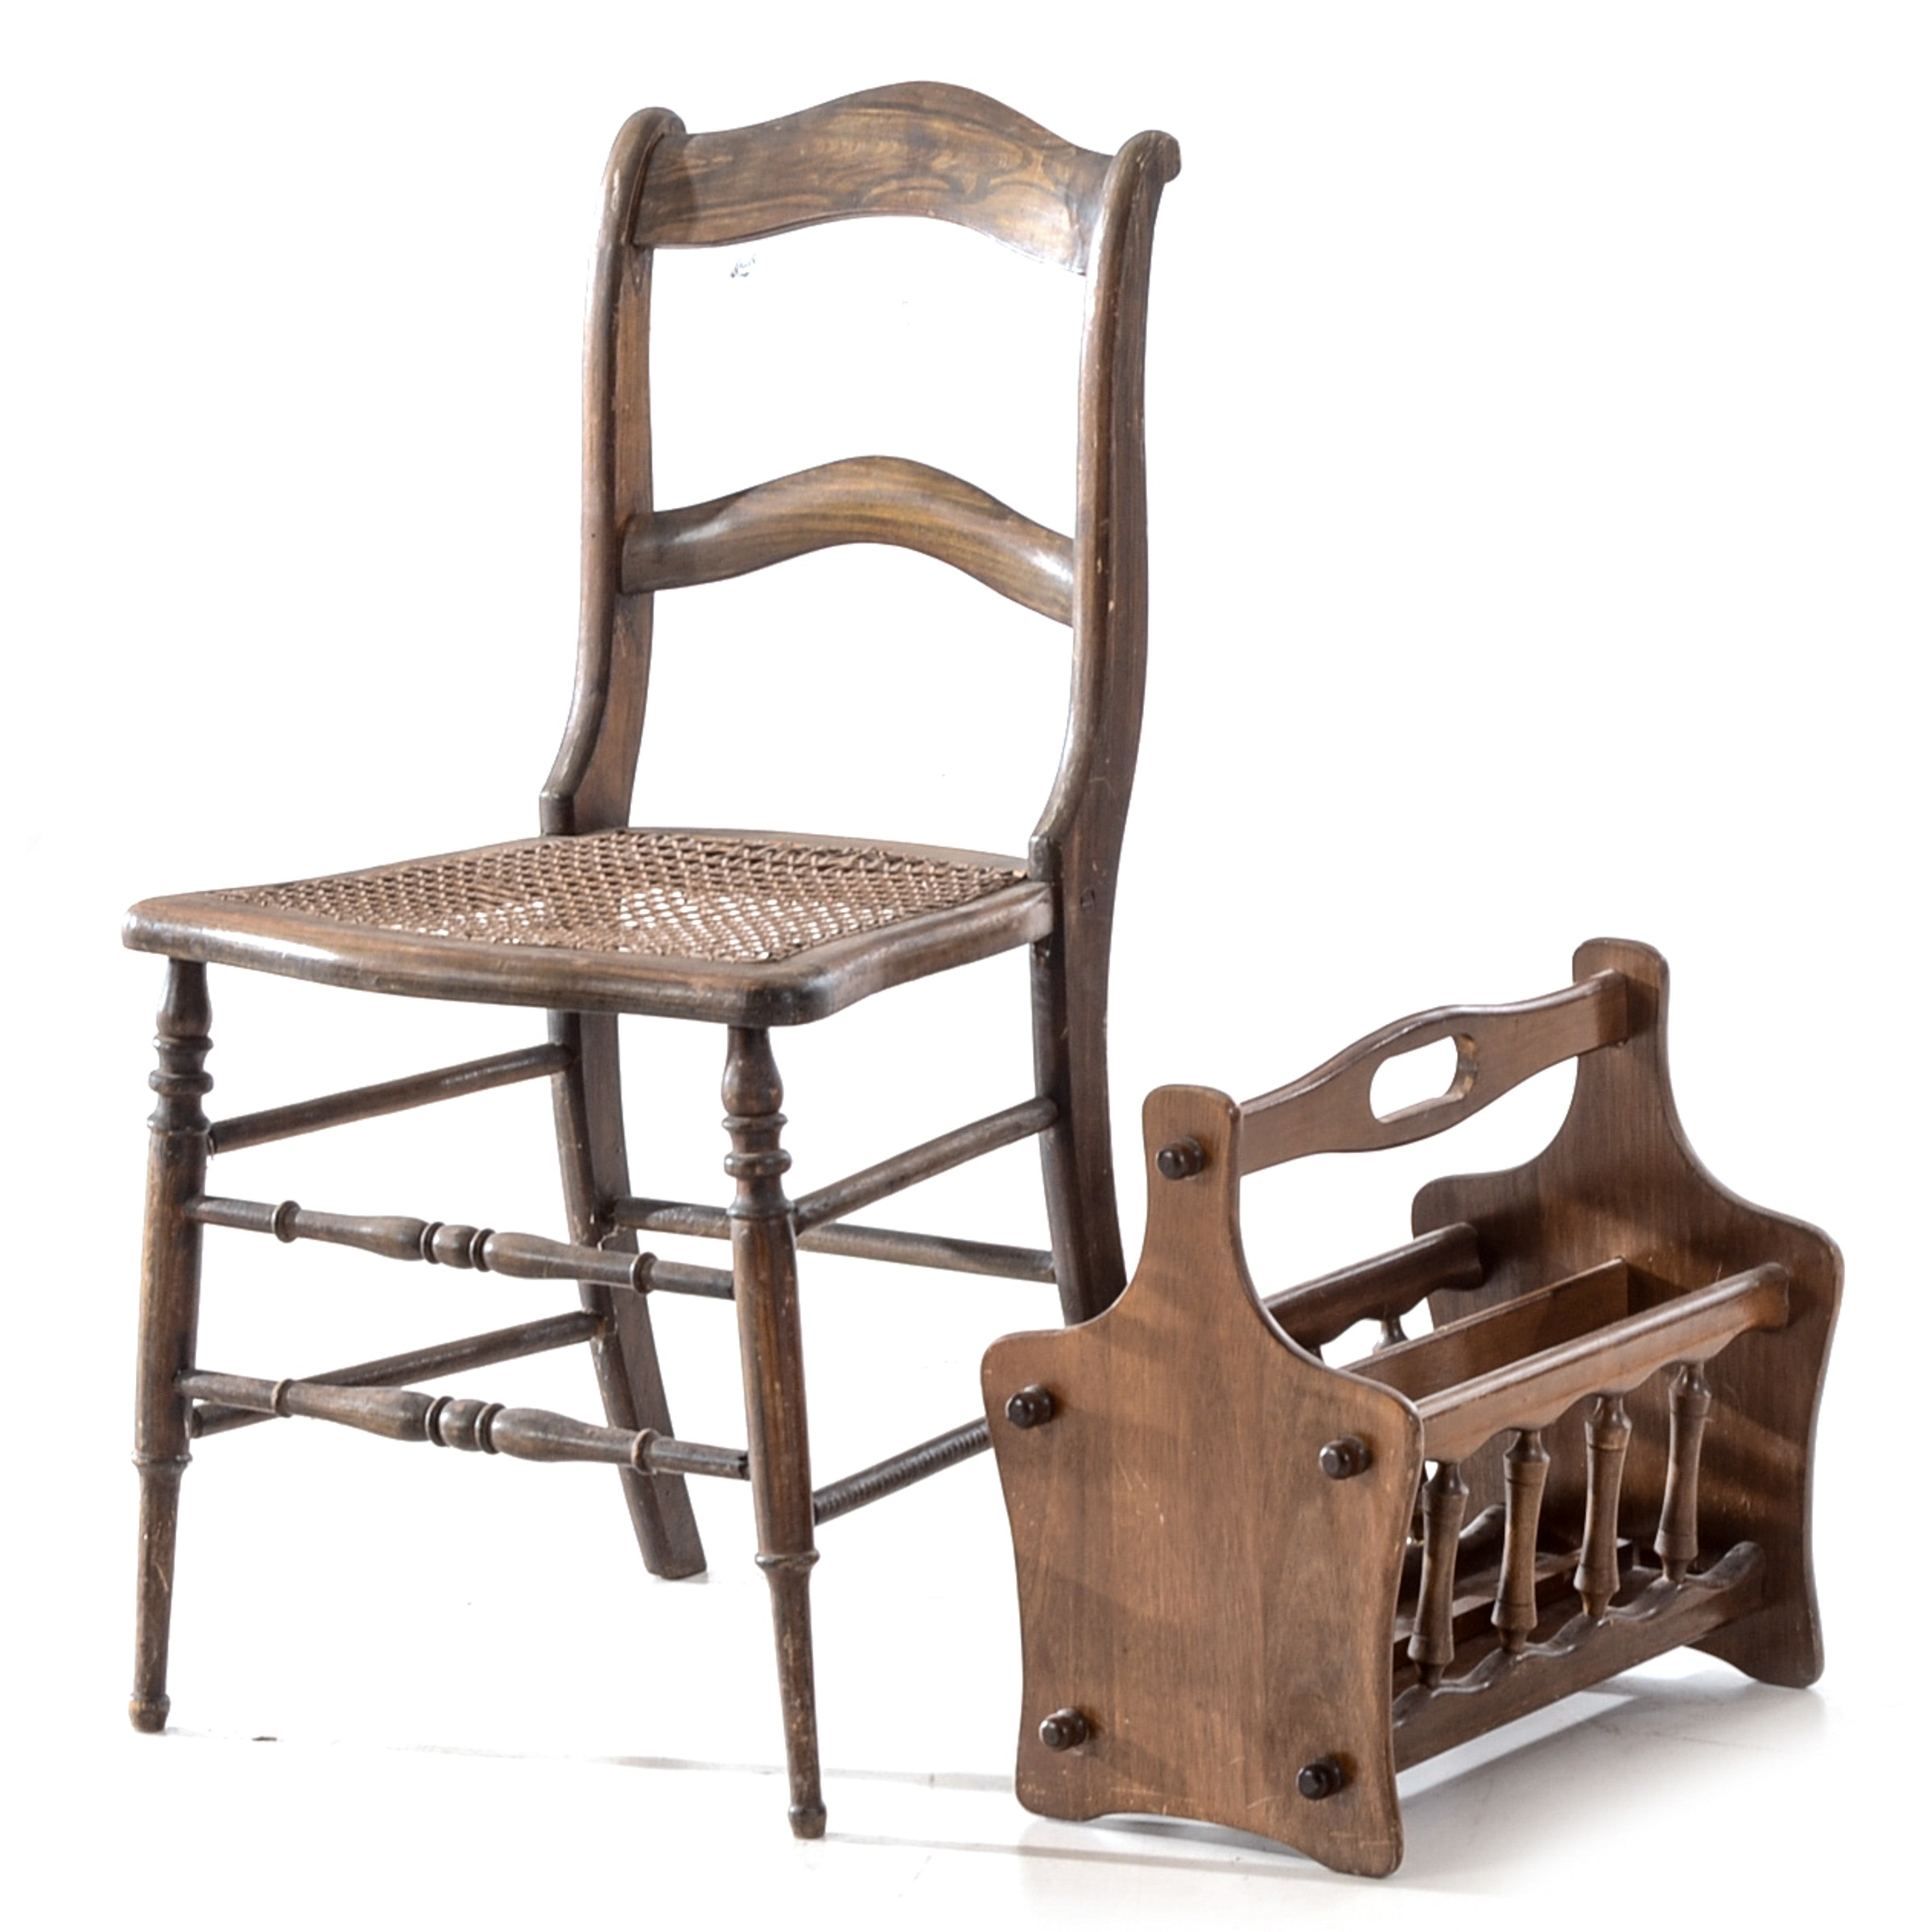 Magazine Rack and Victorian Cane-Seat Chair